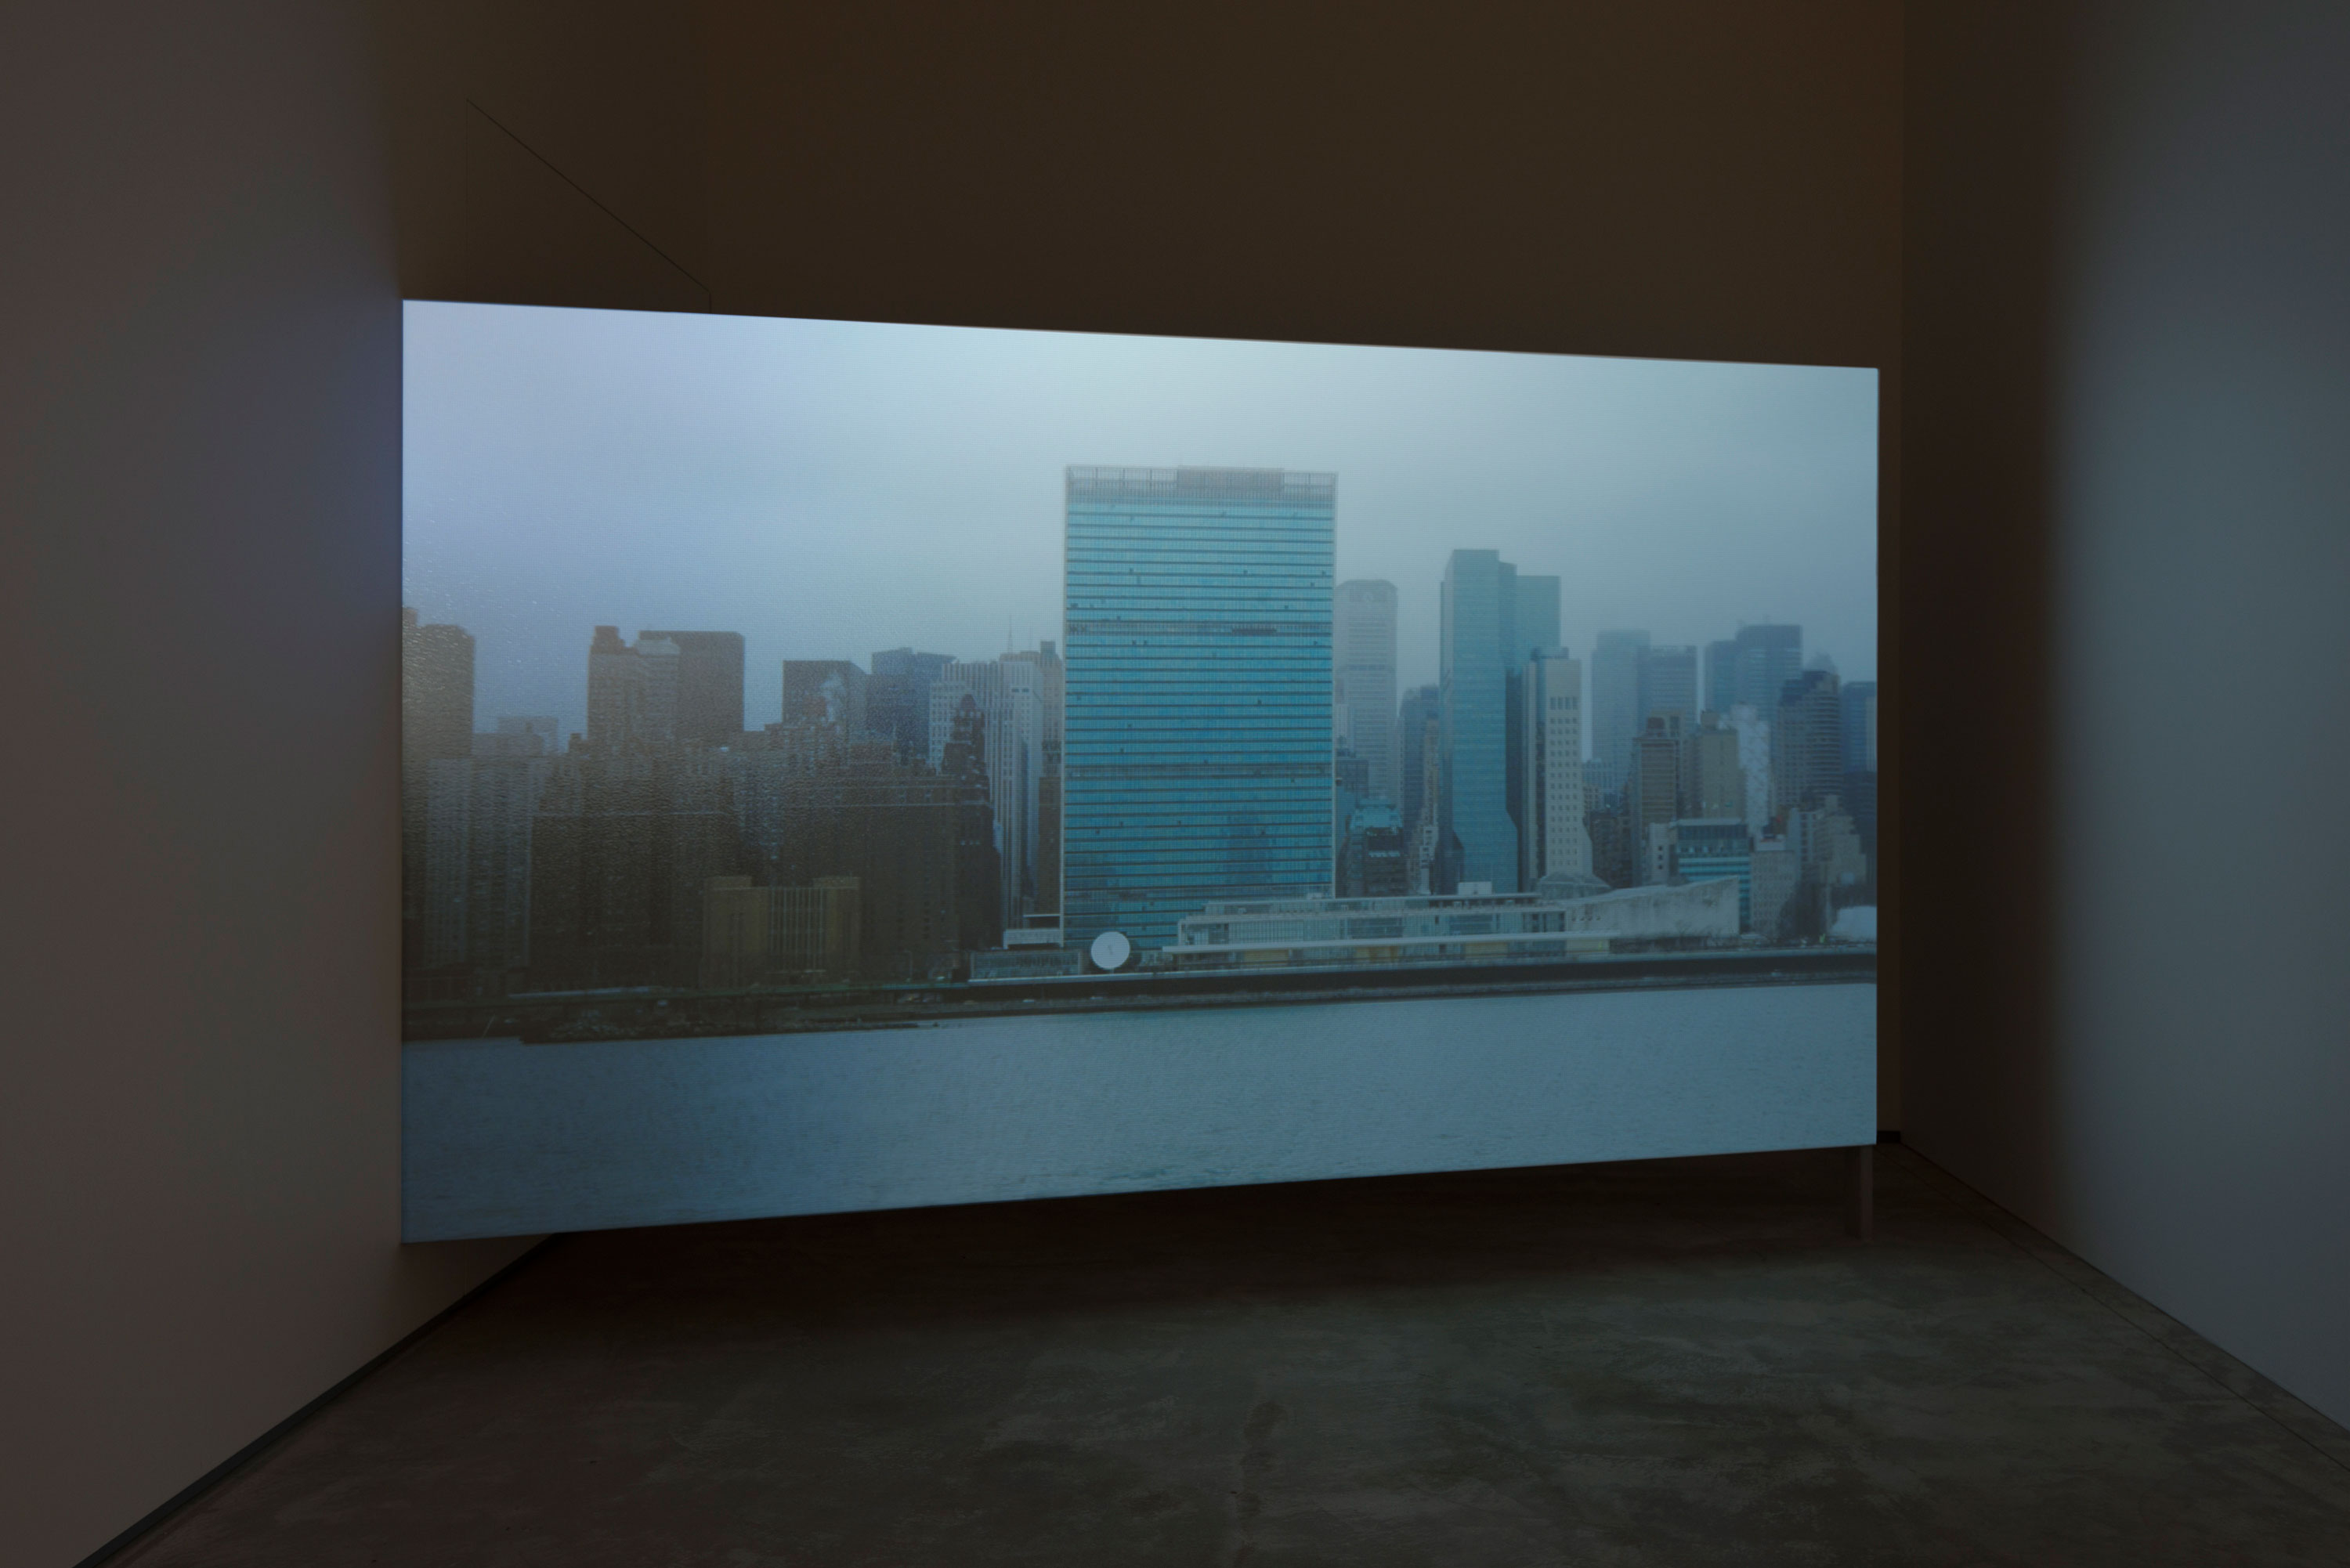 Erin Shirreff, installation view: <em>UN 2010</em>, video still, 2010, color video, silent, 17 minute loop, Agnes Etherington Art Centre, Kingston, Ontario. Photo by Paul Litherland.